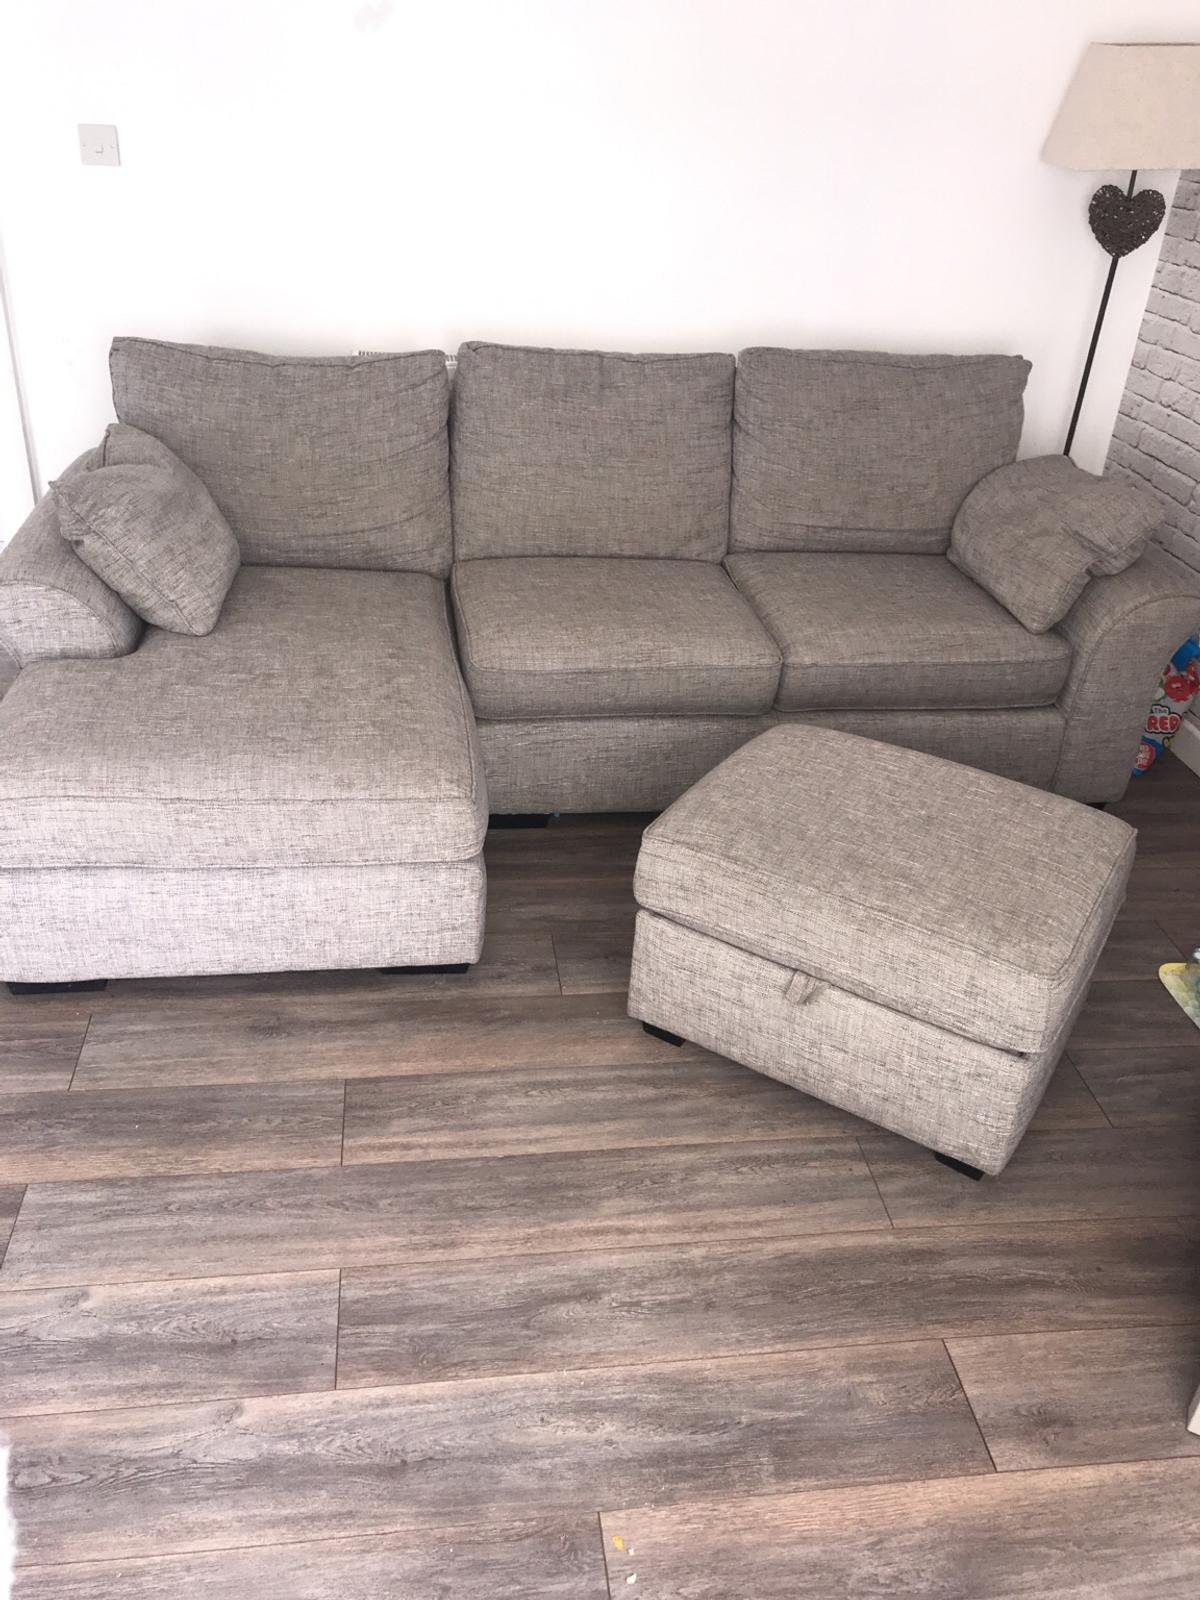 Next Corner Sofa With Storage Pouffe In B29 Birmingham For £250.00 For Sale   Shpock